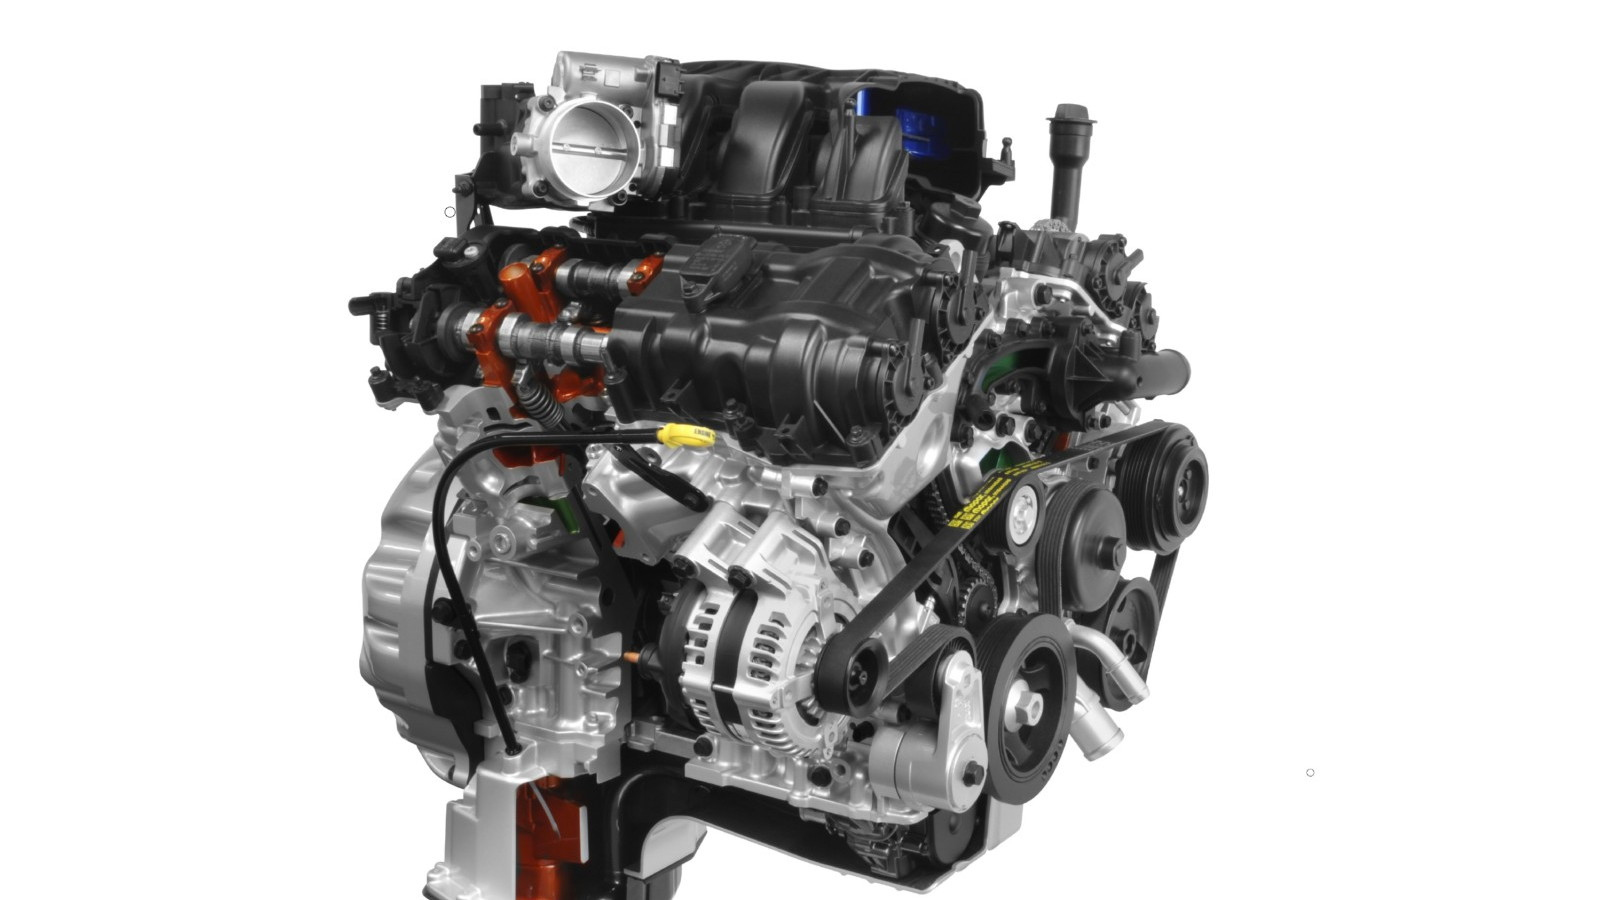 Chrysler Pentastar V-6 engine